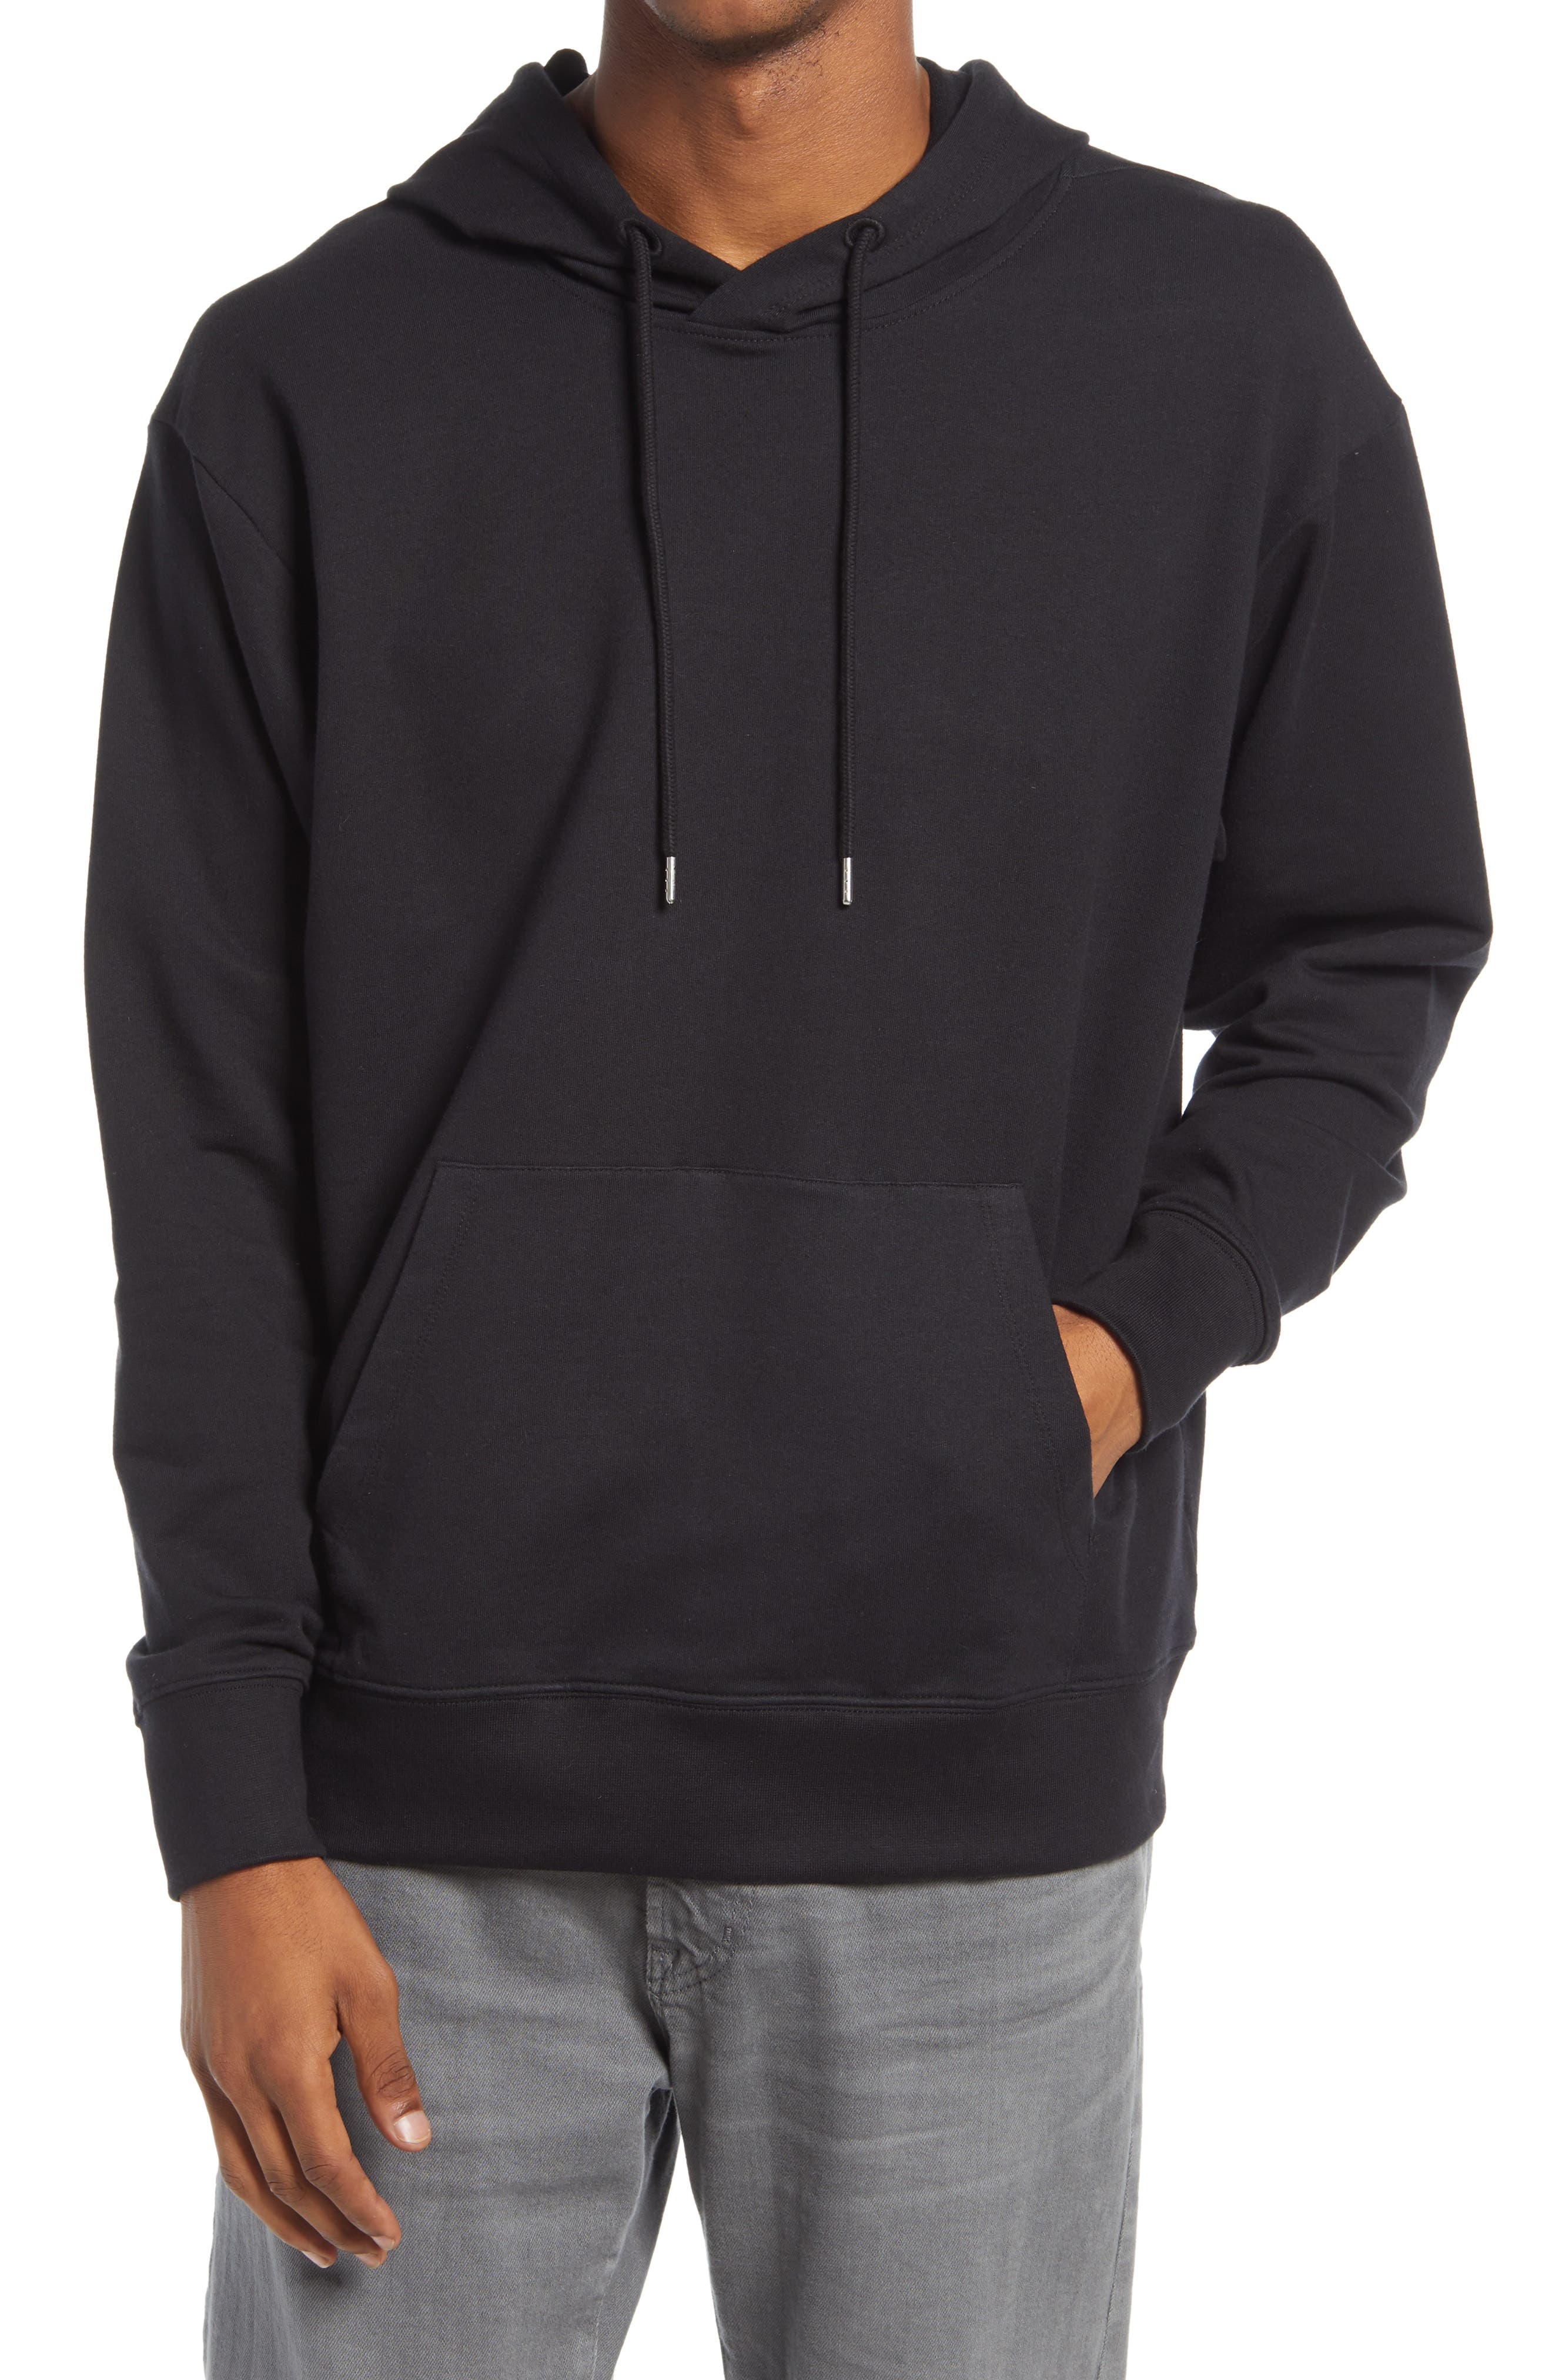 Stretchy cotton-blend fleece moves with you all day in a hooded sweatshirt sporting a roomy fit that\\\'s easy to layer and always comfortable on its own. Style Name: Bp. Men\\\'S Hoodie. Style Number: 6061731. Available in stores.